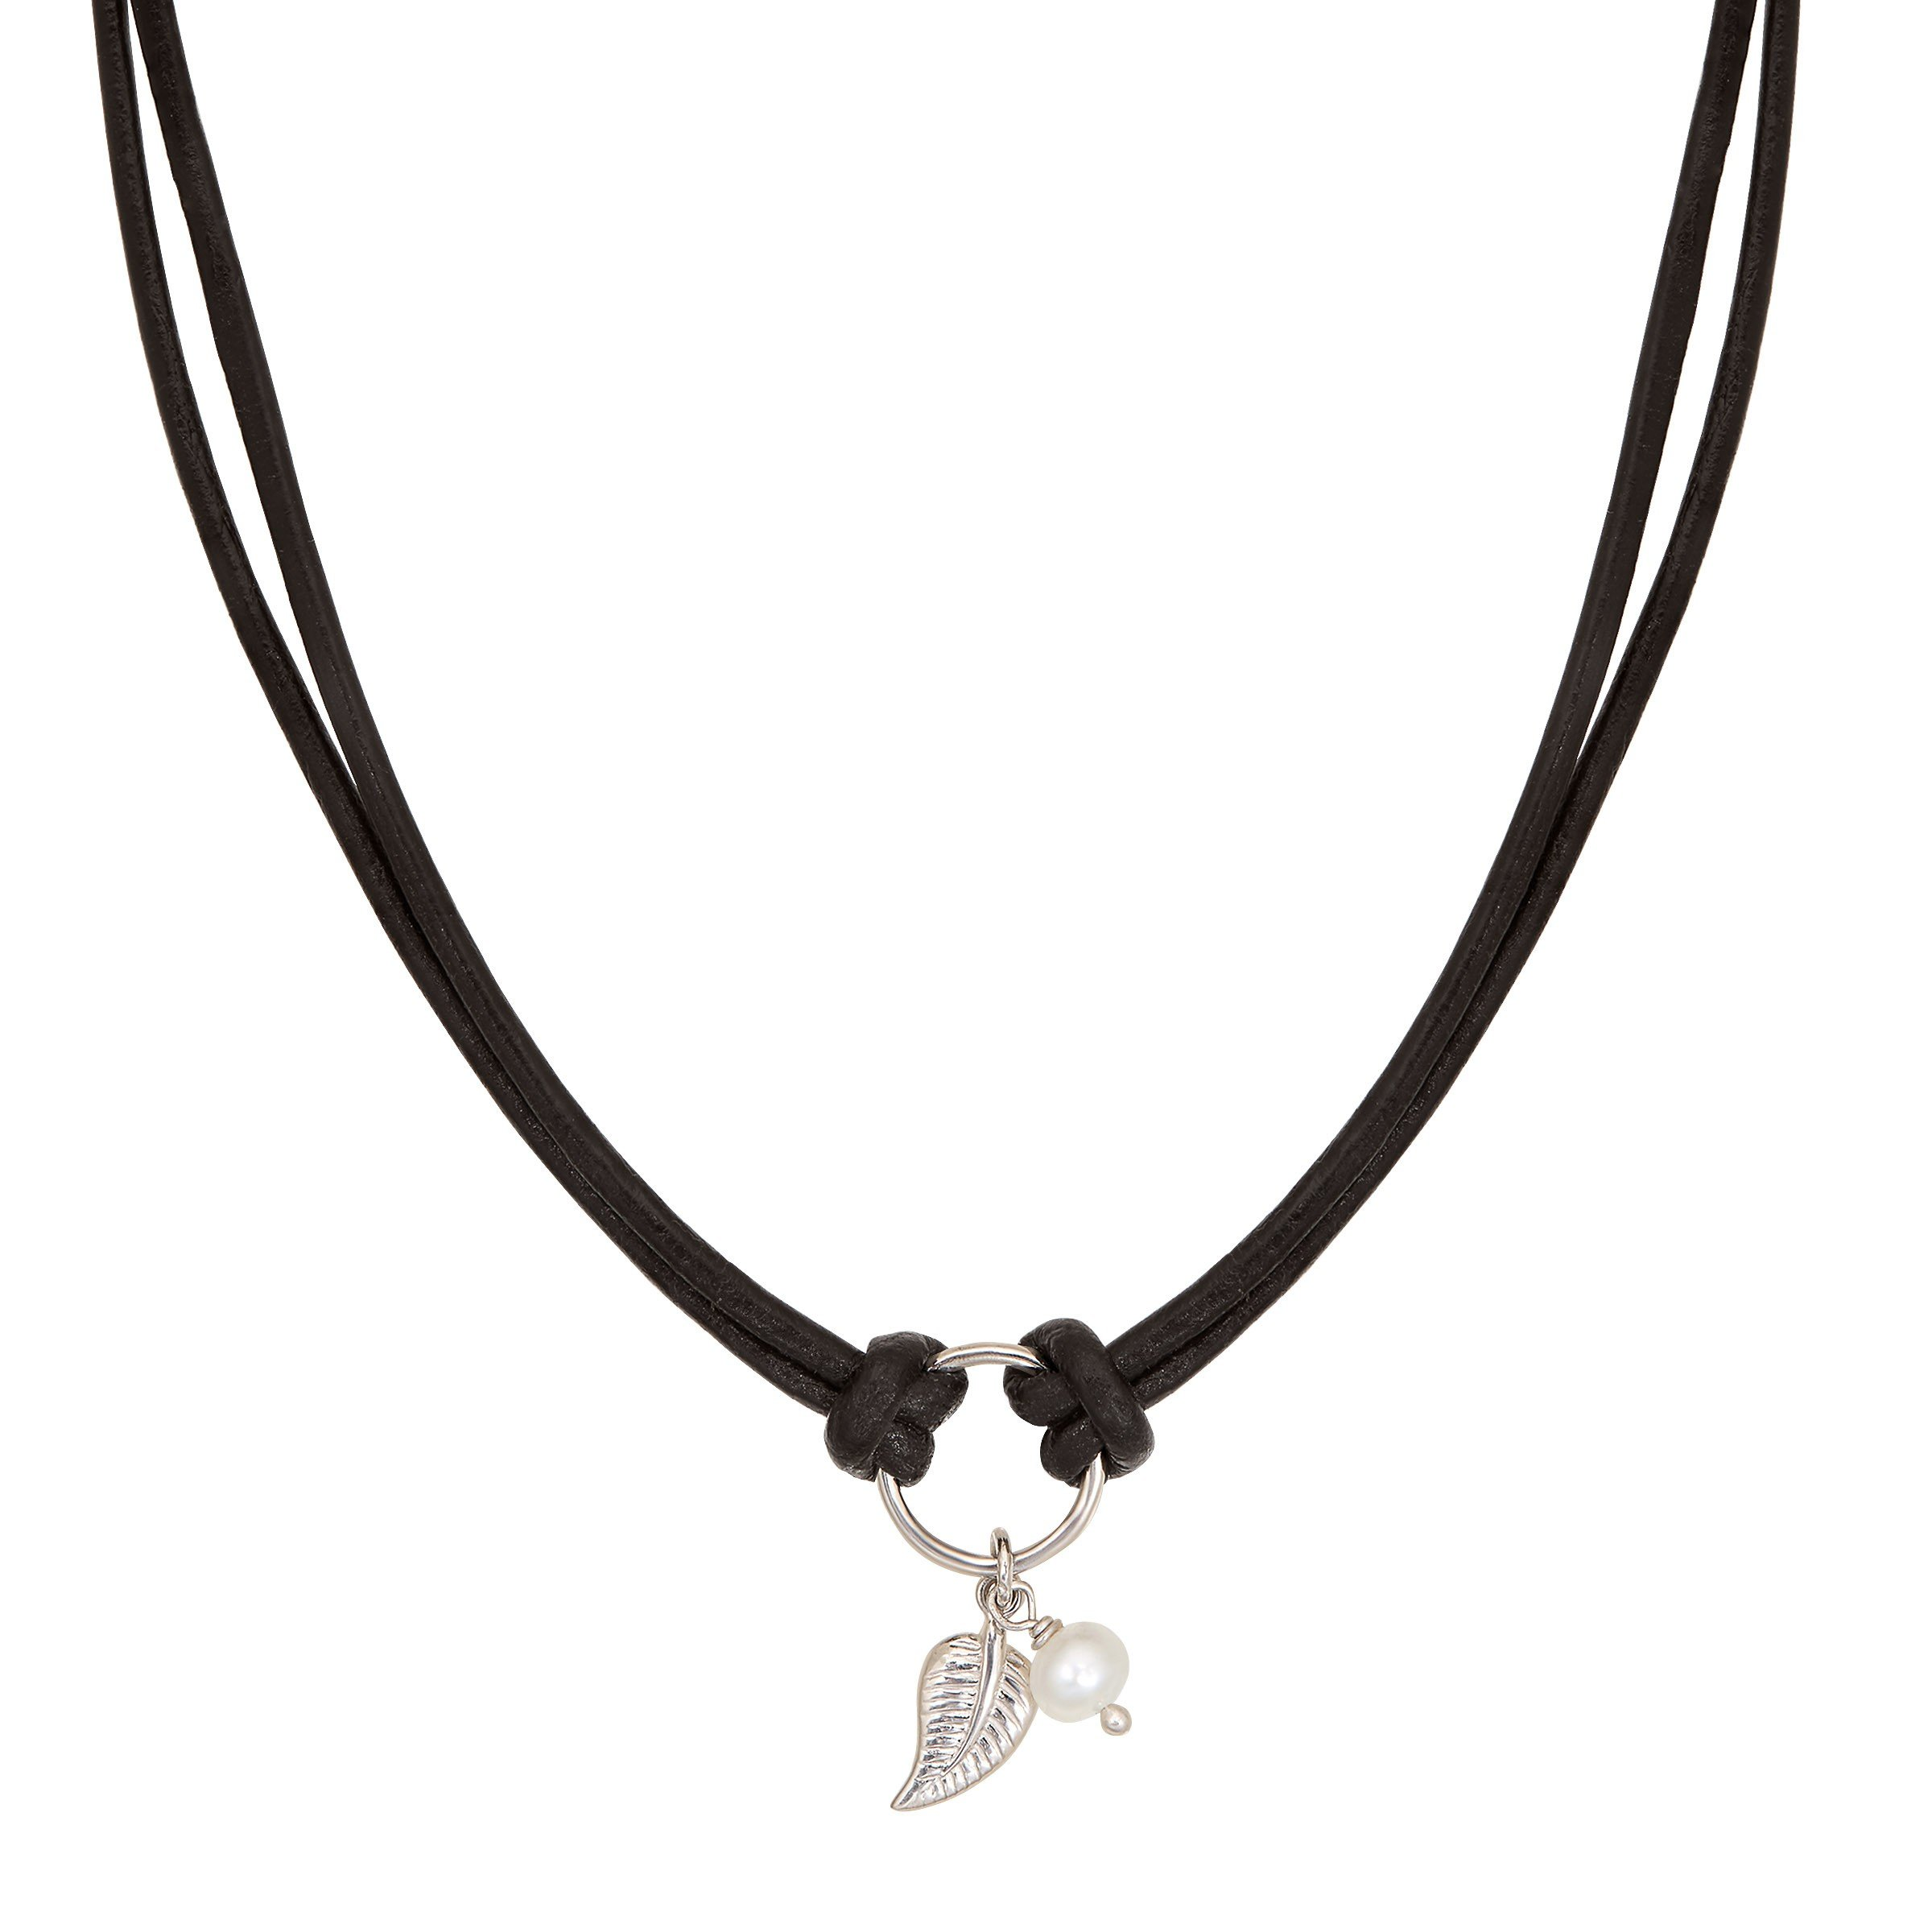 Silpada 'Modern Muse' 5 mm Freshwater Cultured Pearl Double Black Leather Choker in Sterling Silver